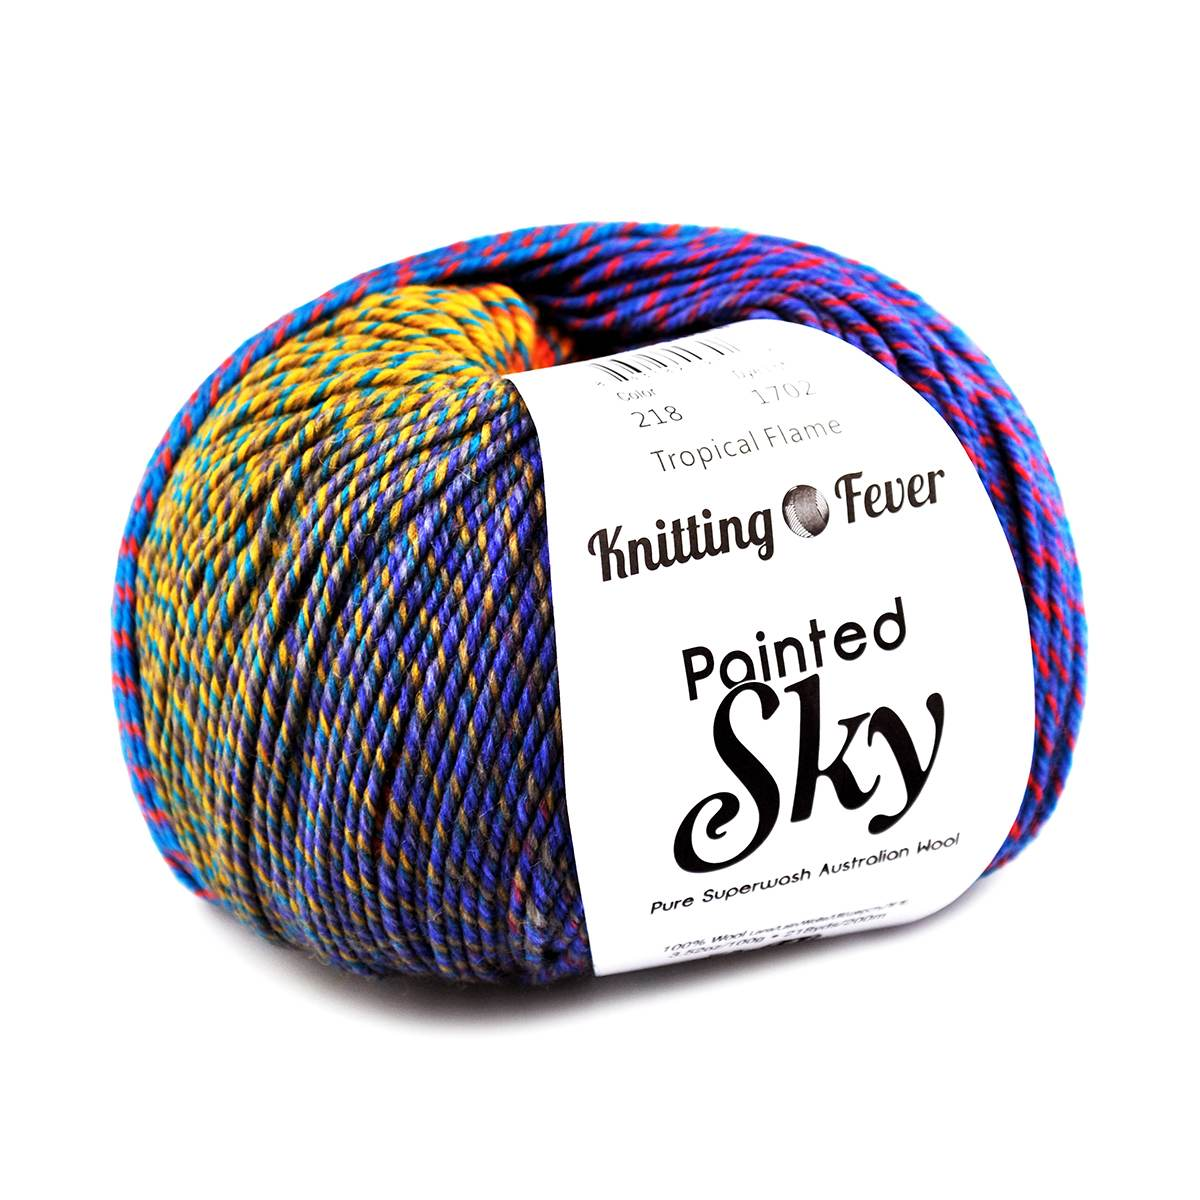 Painted Sky by Knitting Fever